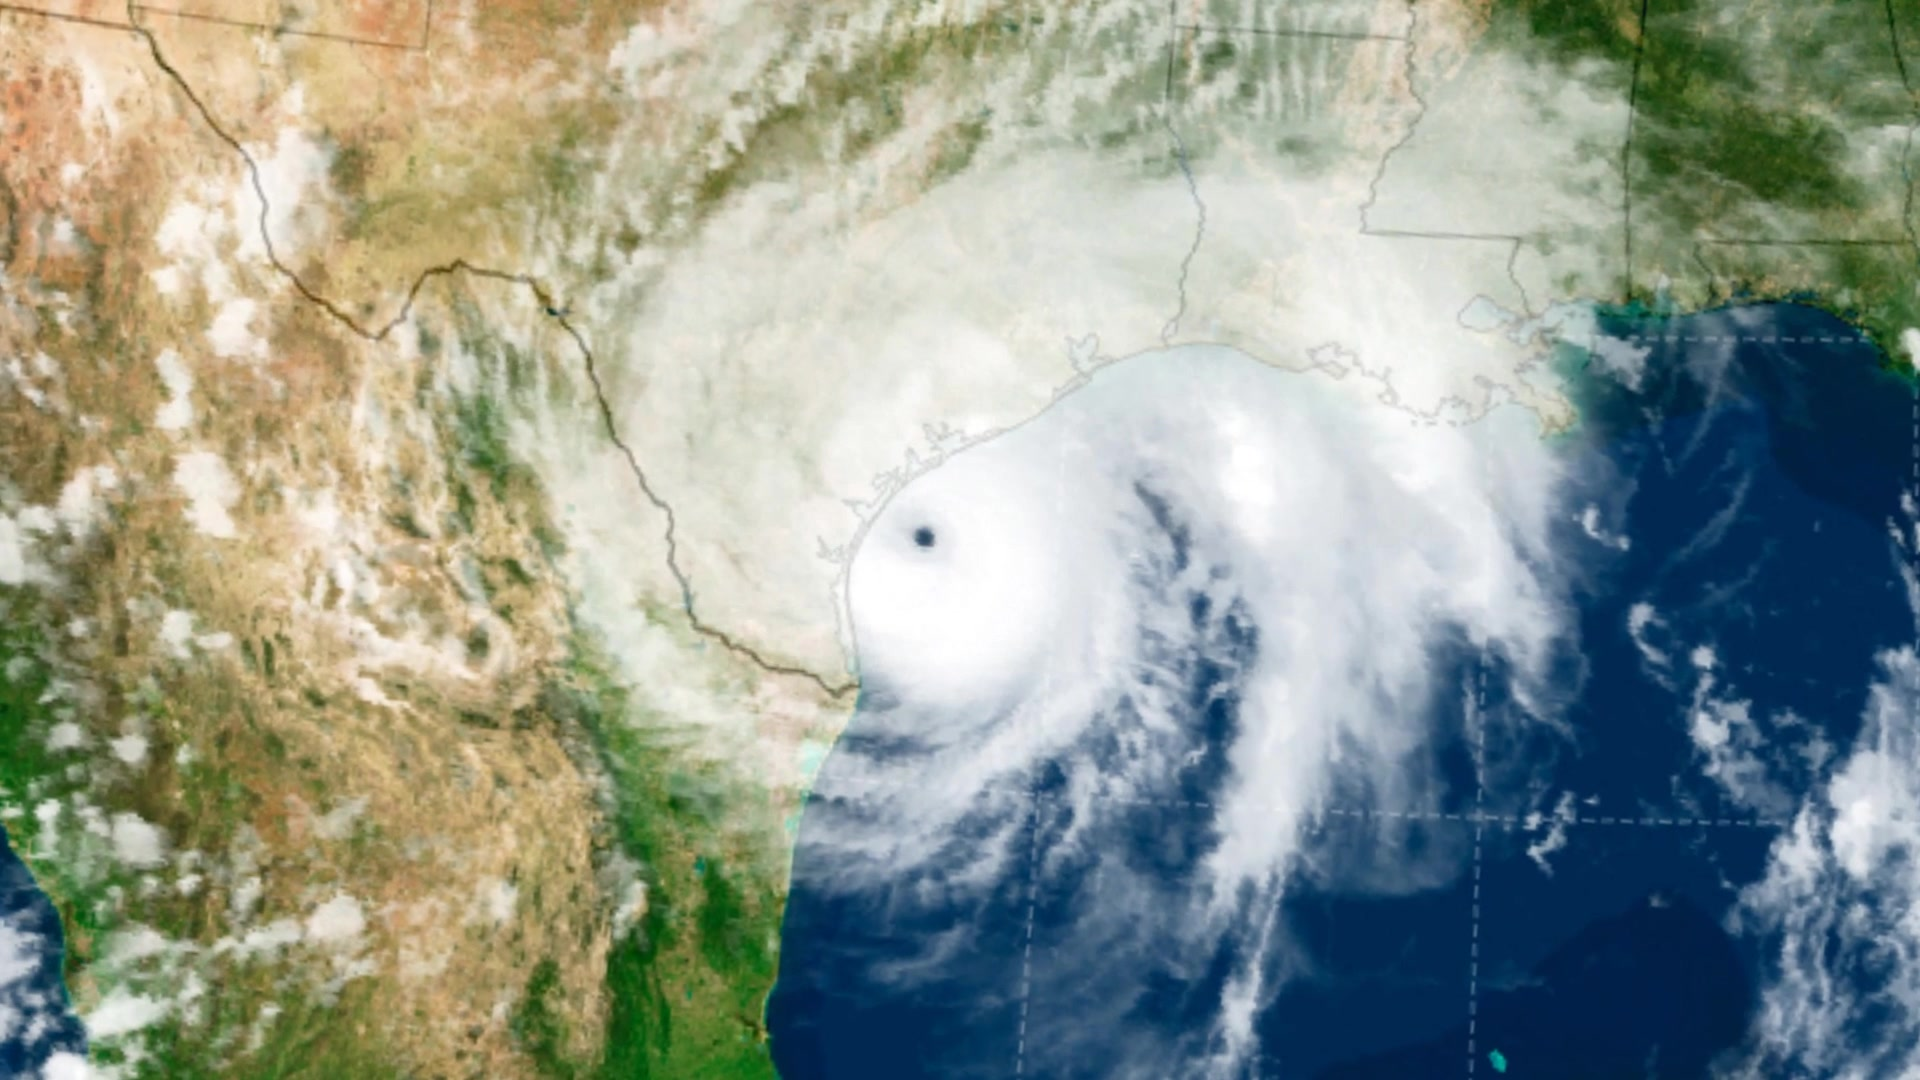 It has been one year since Hurricane Harvey made landfall on the Texas coast, bringing more than 60 inches of rainfall. Those conditions brought the possibility of the outbreak of diseases carried by mosquitoes due to millions of acres of standing, stagnant water. Responding to this threat, mosquito control in the affected areas were started. With resources stretched thin and the titanic scope of the task at hand, the state of Texas and FEMA turned to the Department of Defense for assistance. Air Force Reserve Command's 910th Airlift Wing, based at Youngstown Air Reserve Station, Ohio, home of the DoD's only large area, fixed-wing aerial spray mission, answered the call. This is the story of their mission.